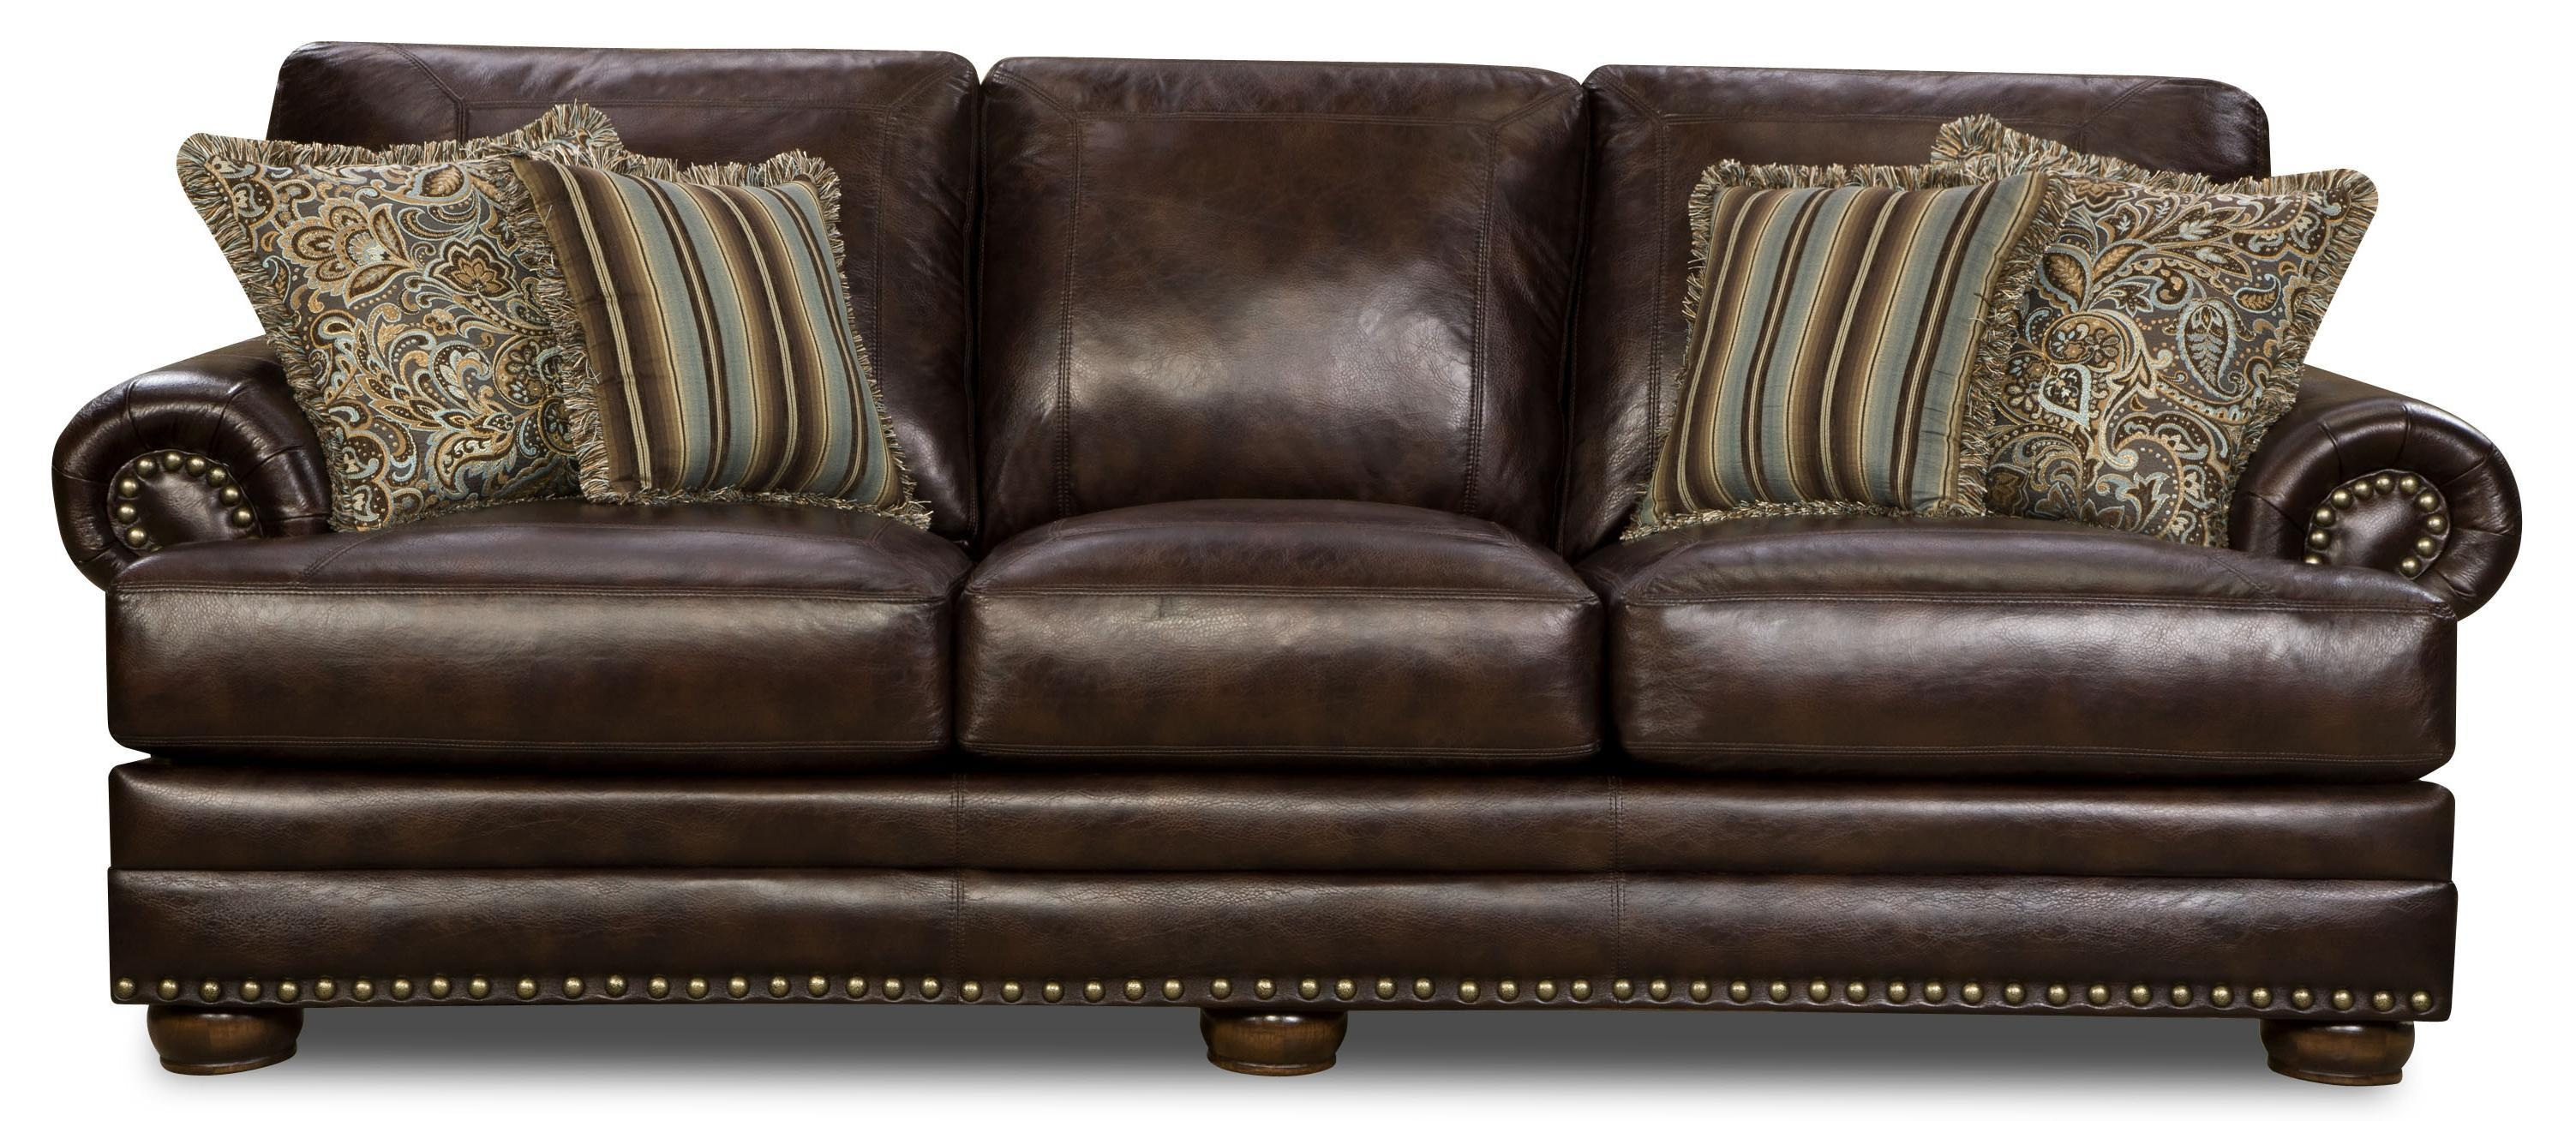 Corinthian Leather Sofa Corinthian Alexander Leather Reclining With Corinthian Sofas (View 7 of 20)